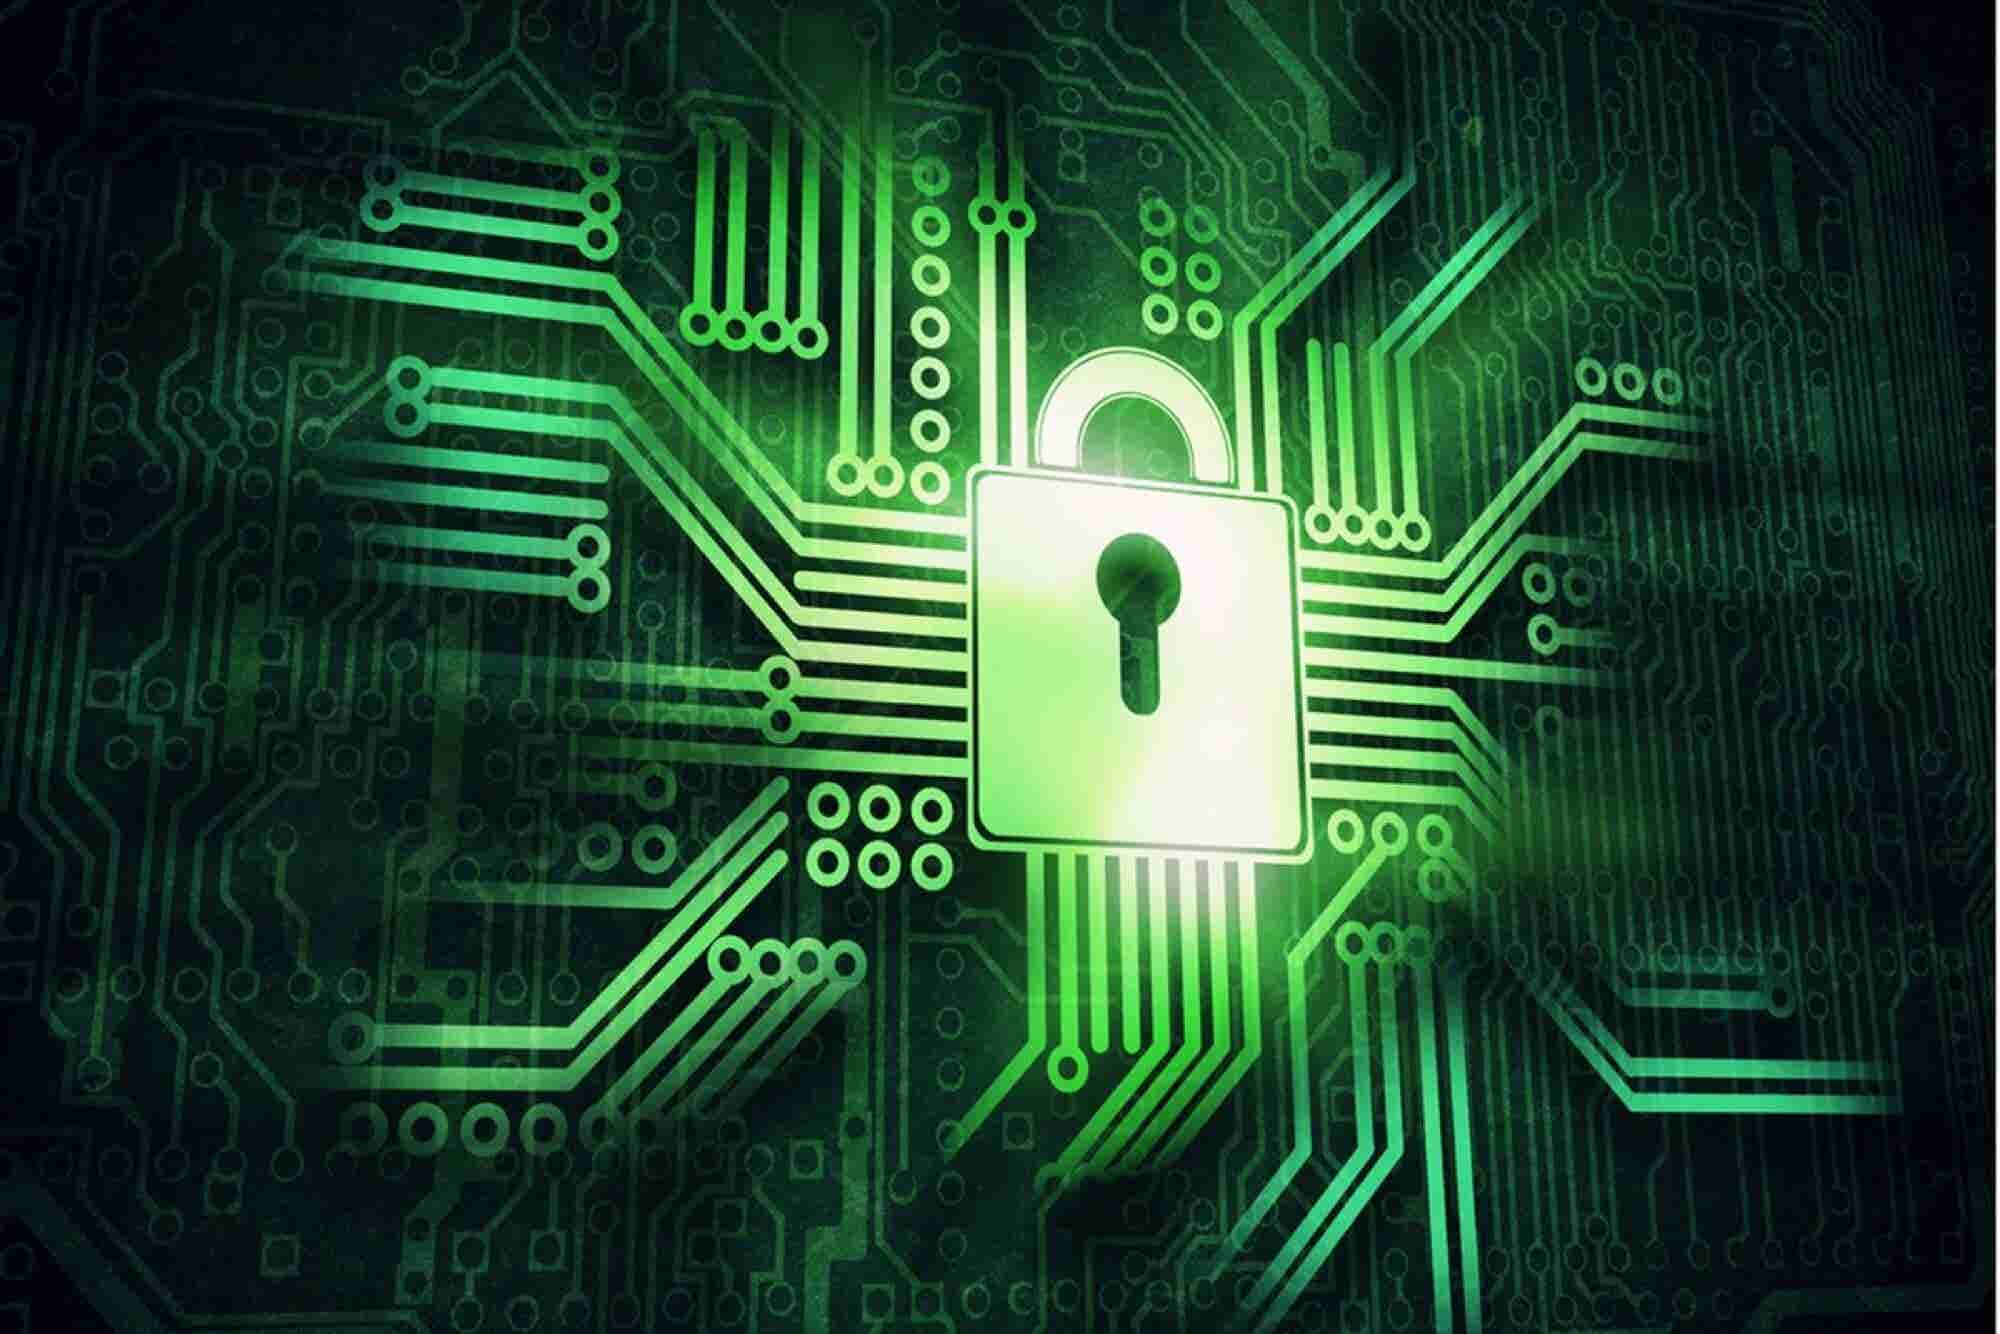 Feds Investigate Cyberattack on U.S. Power Plants